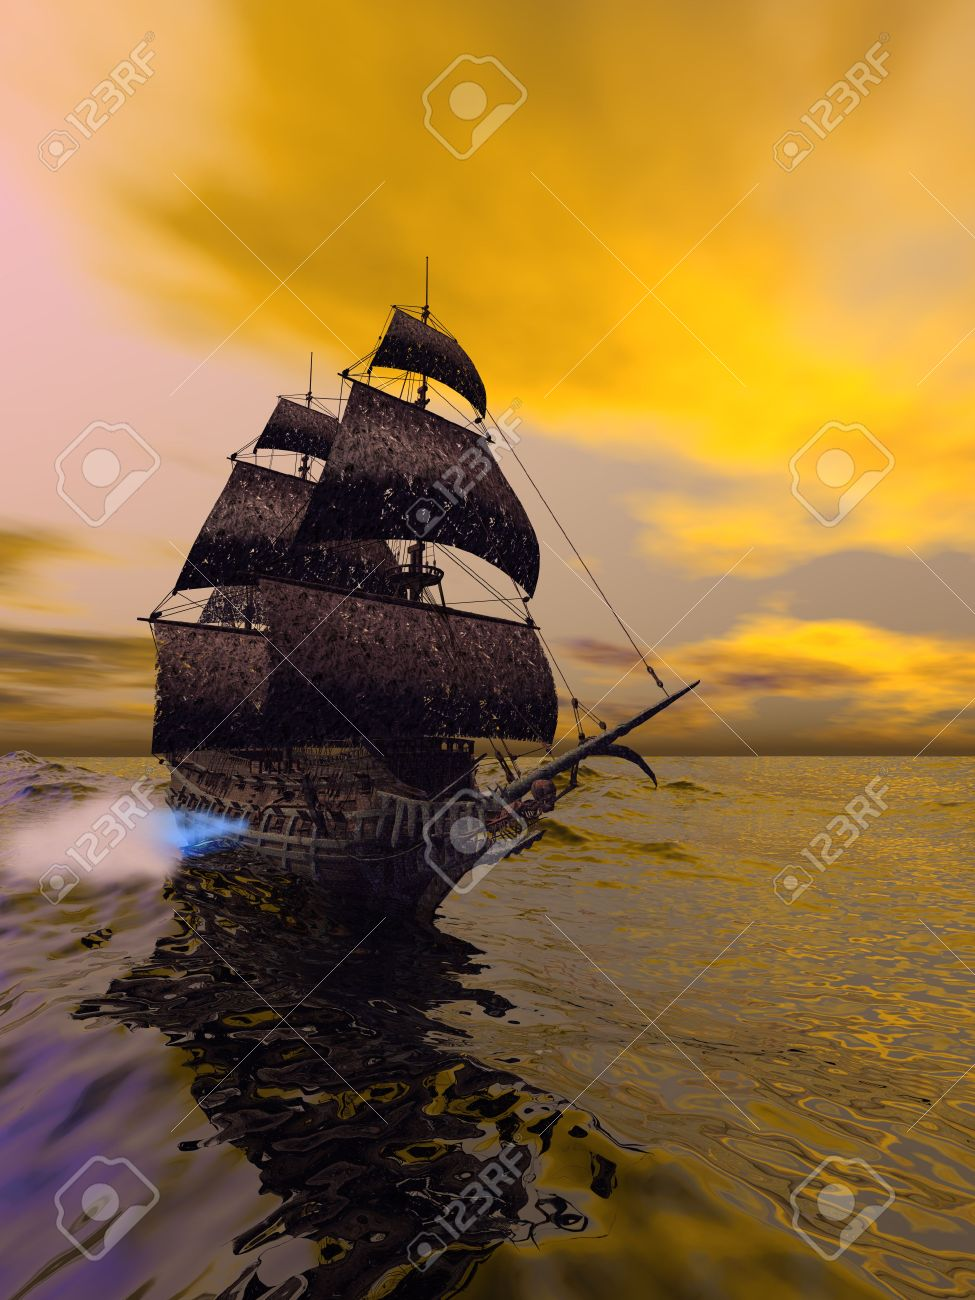 The Flying Dutchman, according to folklore, is a ghost ship that can never go home, doomed to sail the oceans forever. The Flying Dutchman is usually spotted from far away, sometimes glowing with ghostly light. It is said that if hailed by another ship, i Stock Photo - 7256381